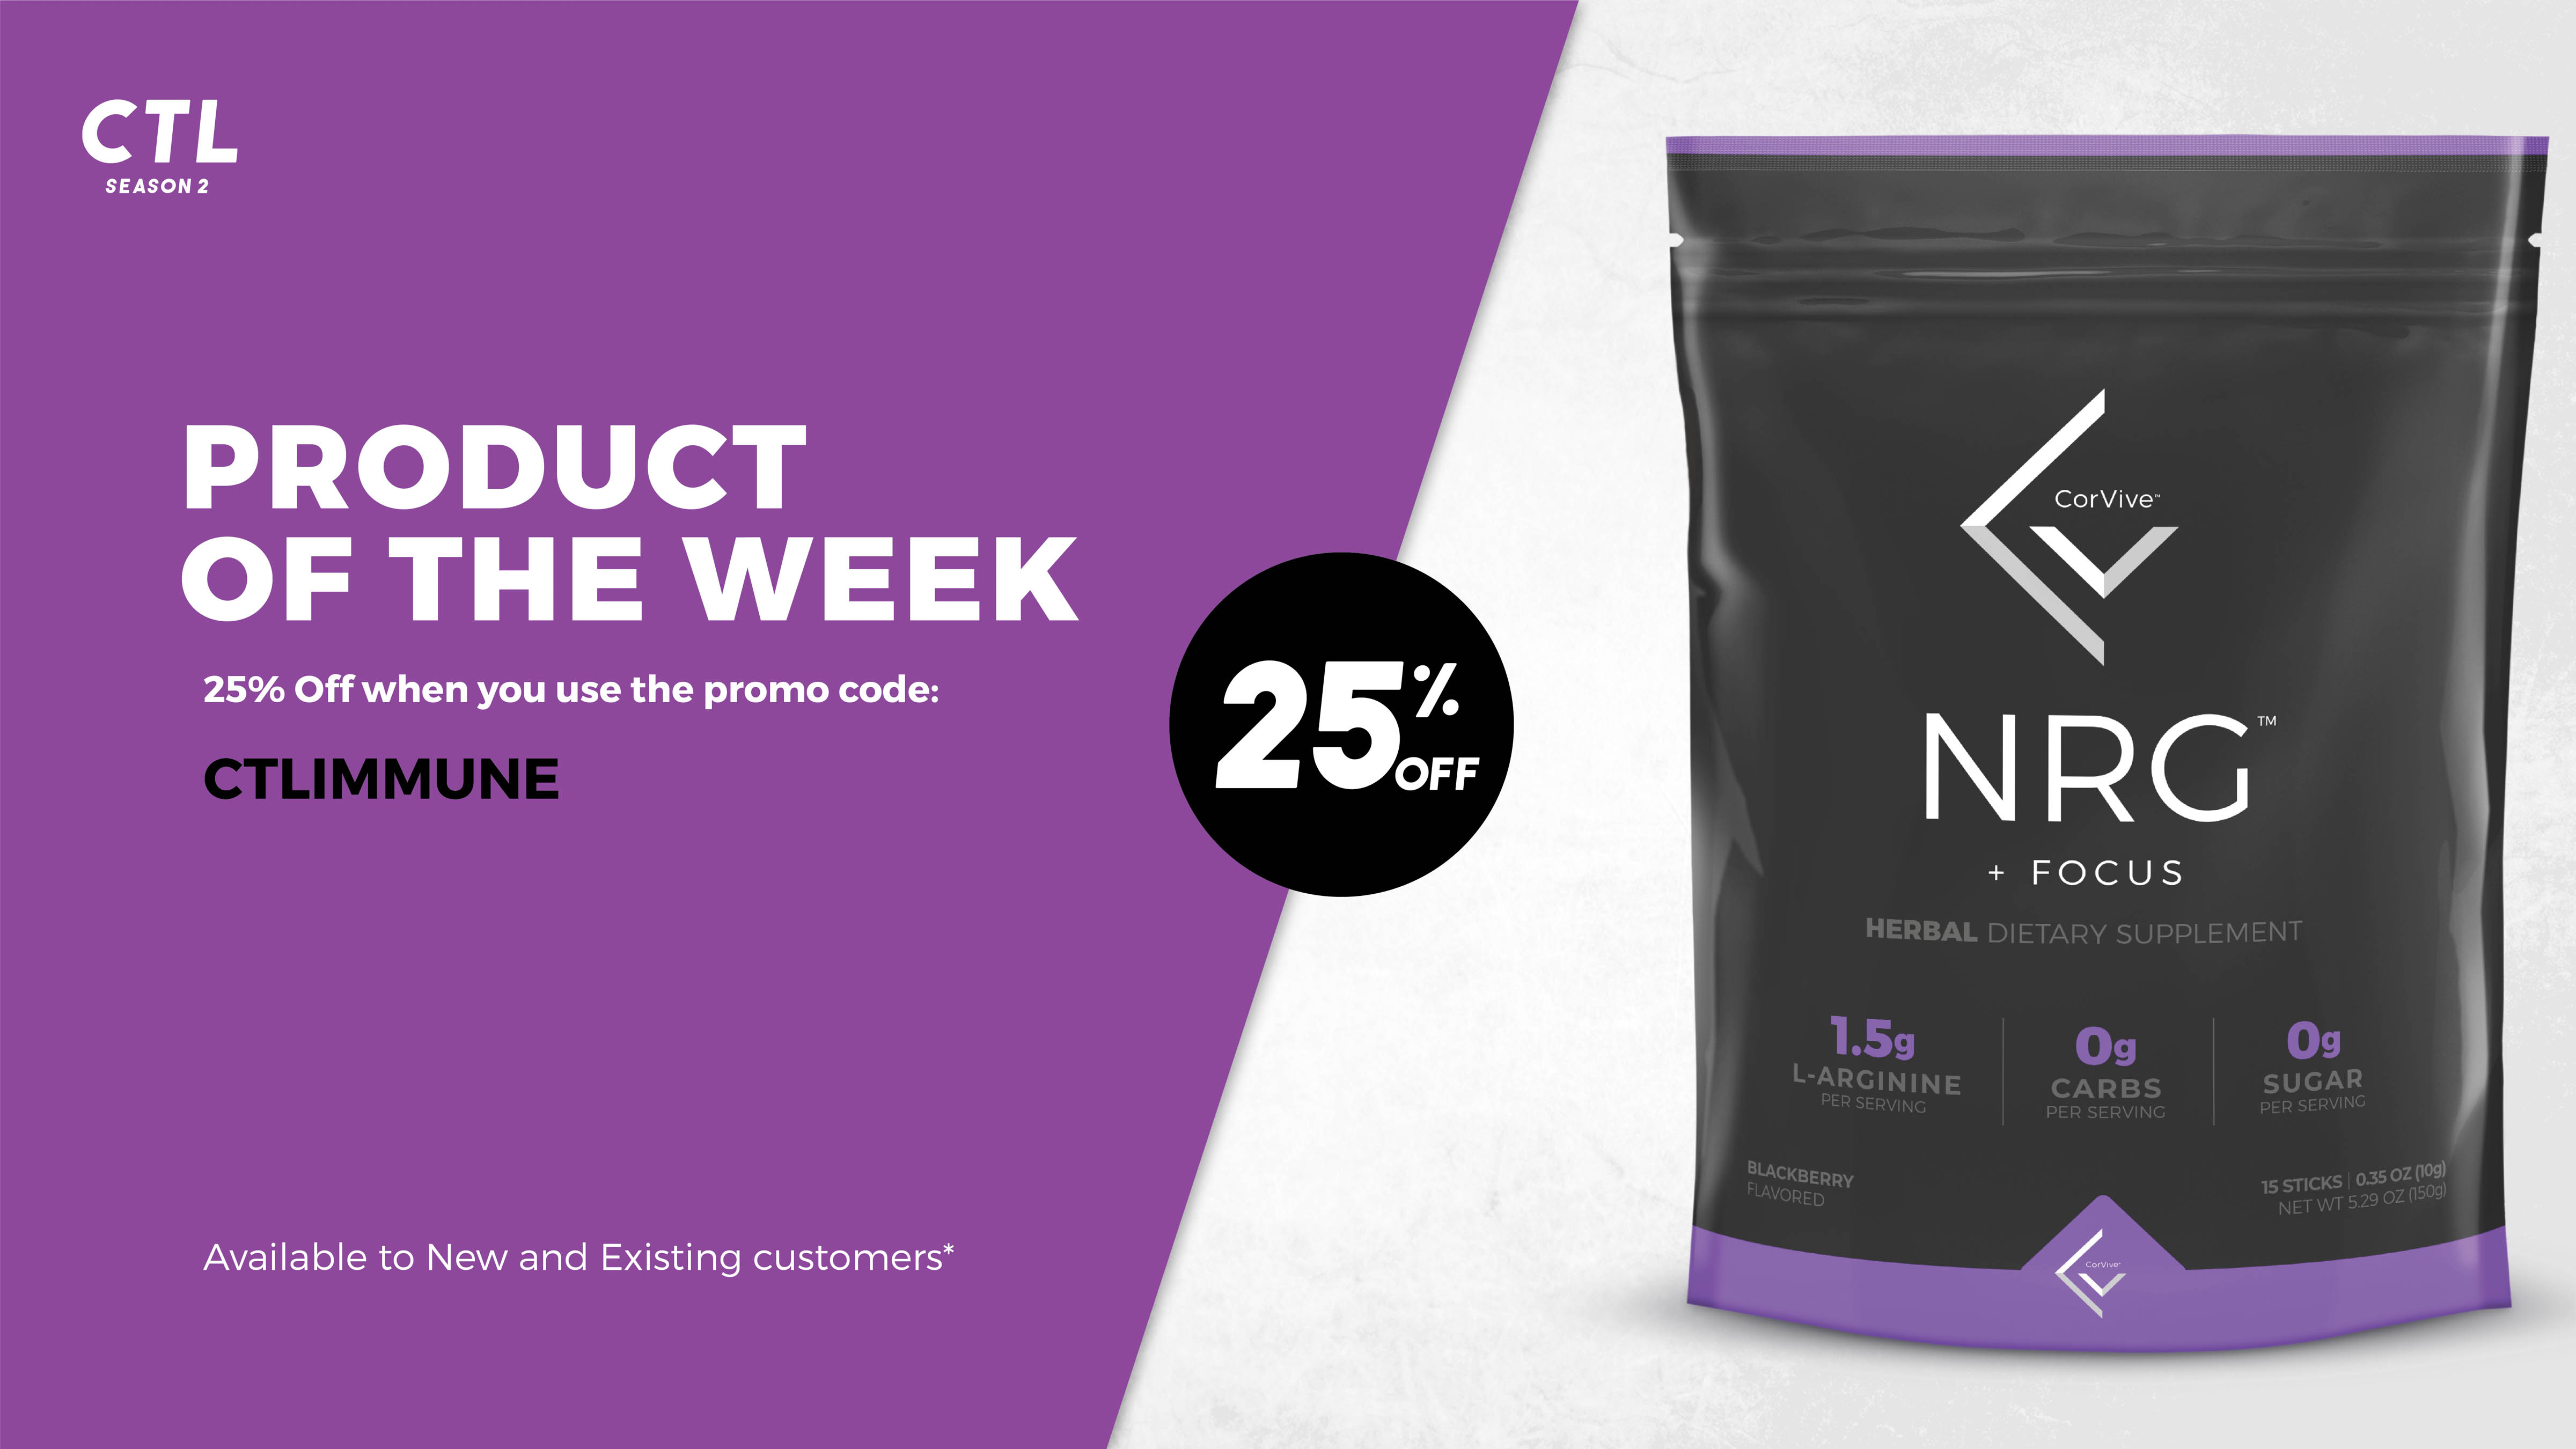 CorVive product of the week NRG + focus